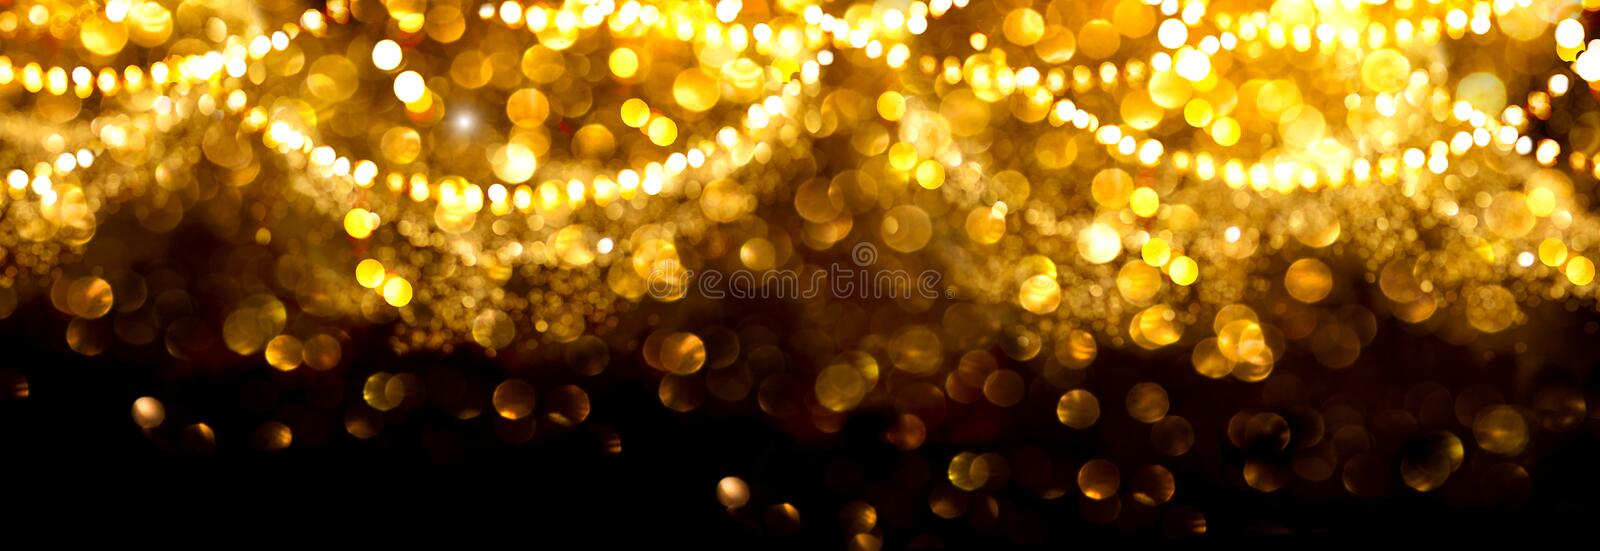 Christmas golden glowing background. Gold holiday abstract glitter defocused backdrop with blinking stars and garlands stock photos